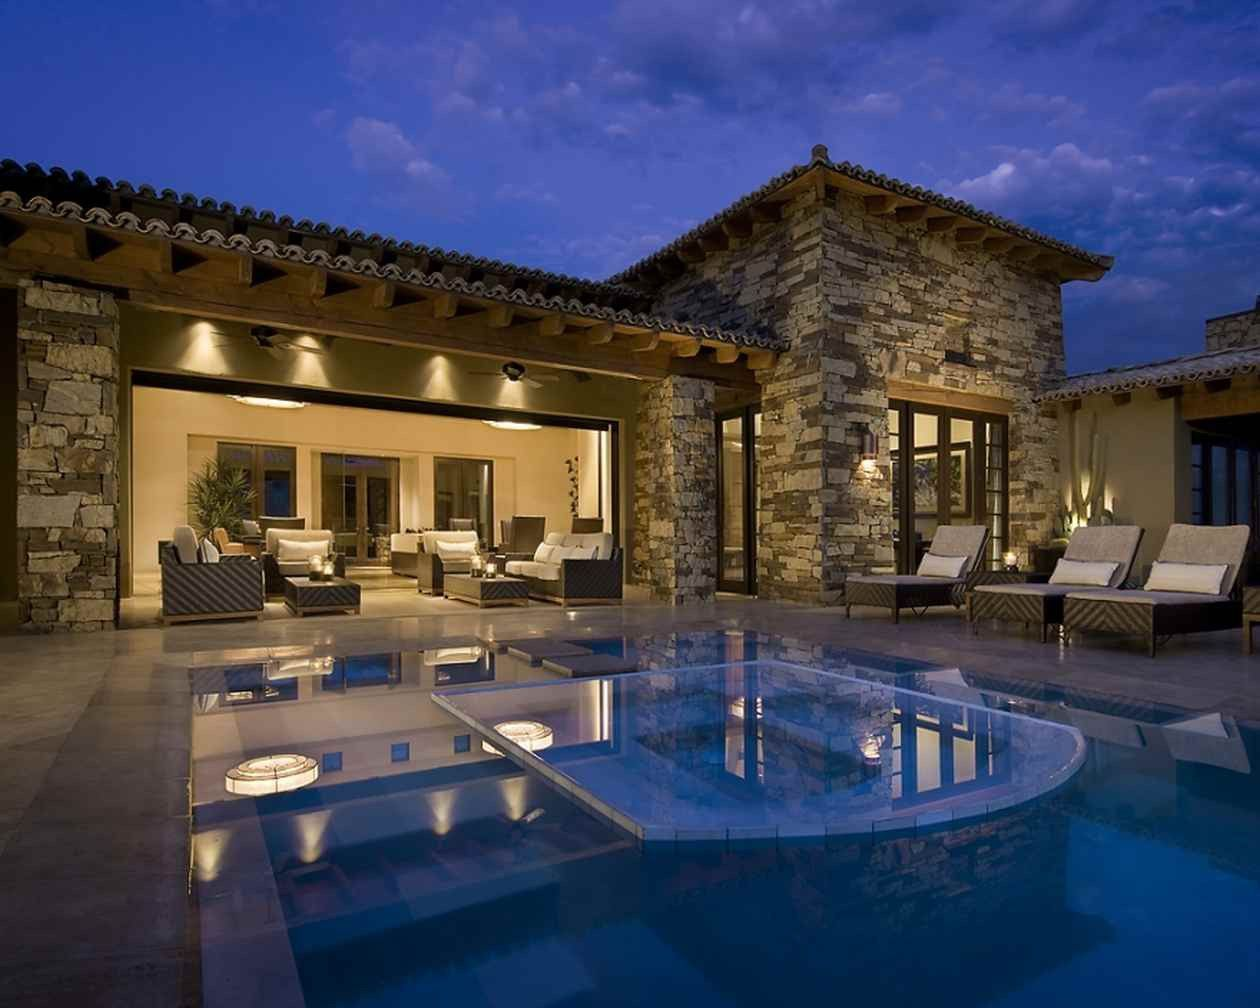 Home Building Ideas Part - 22: Exterior Modern Luxury Spanish Traditional House Design Ideas Resourcedir  With Awesome House Building Stone Walls And